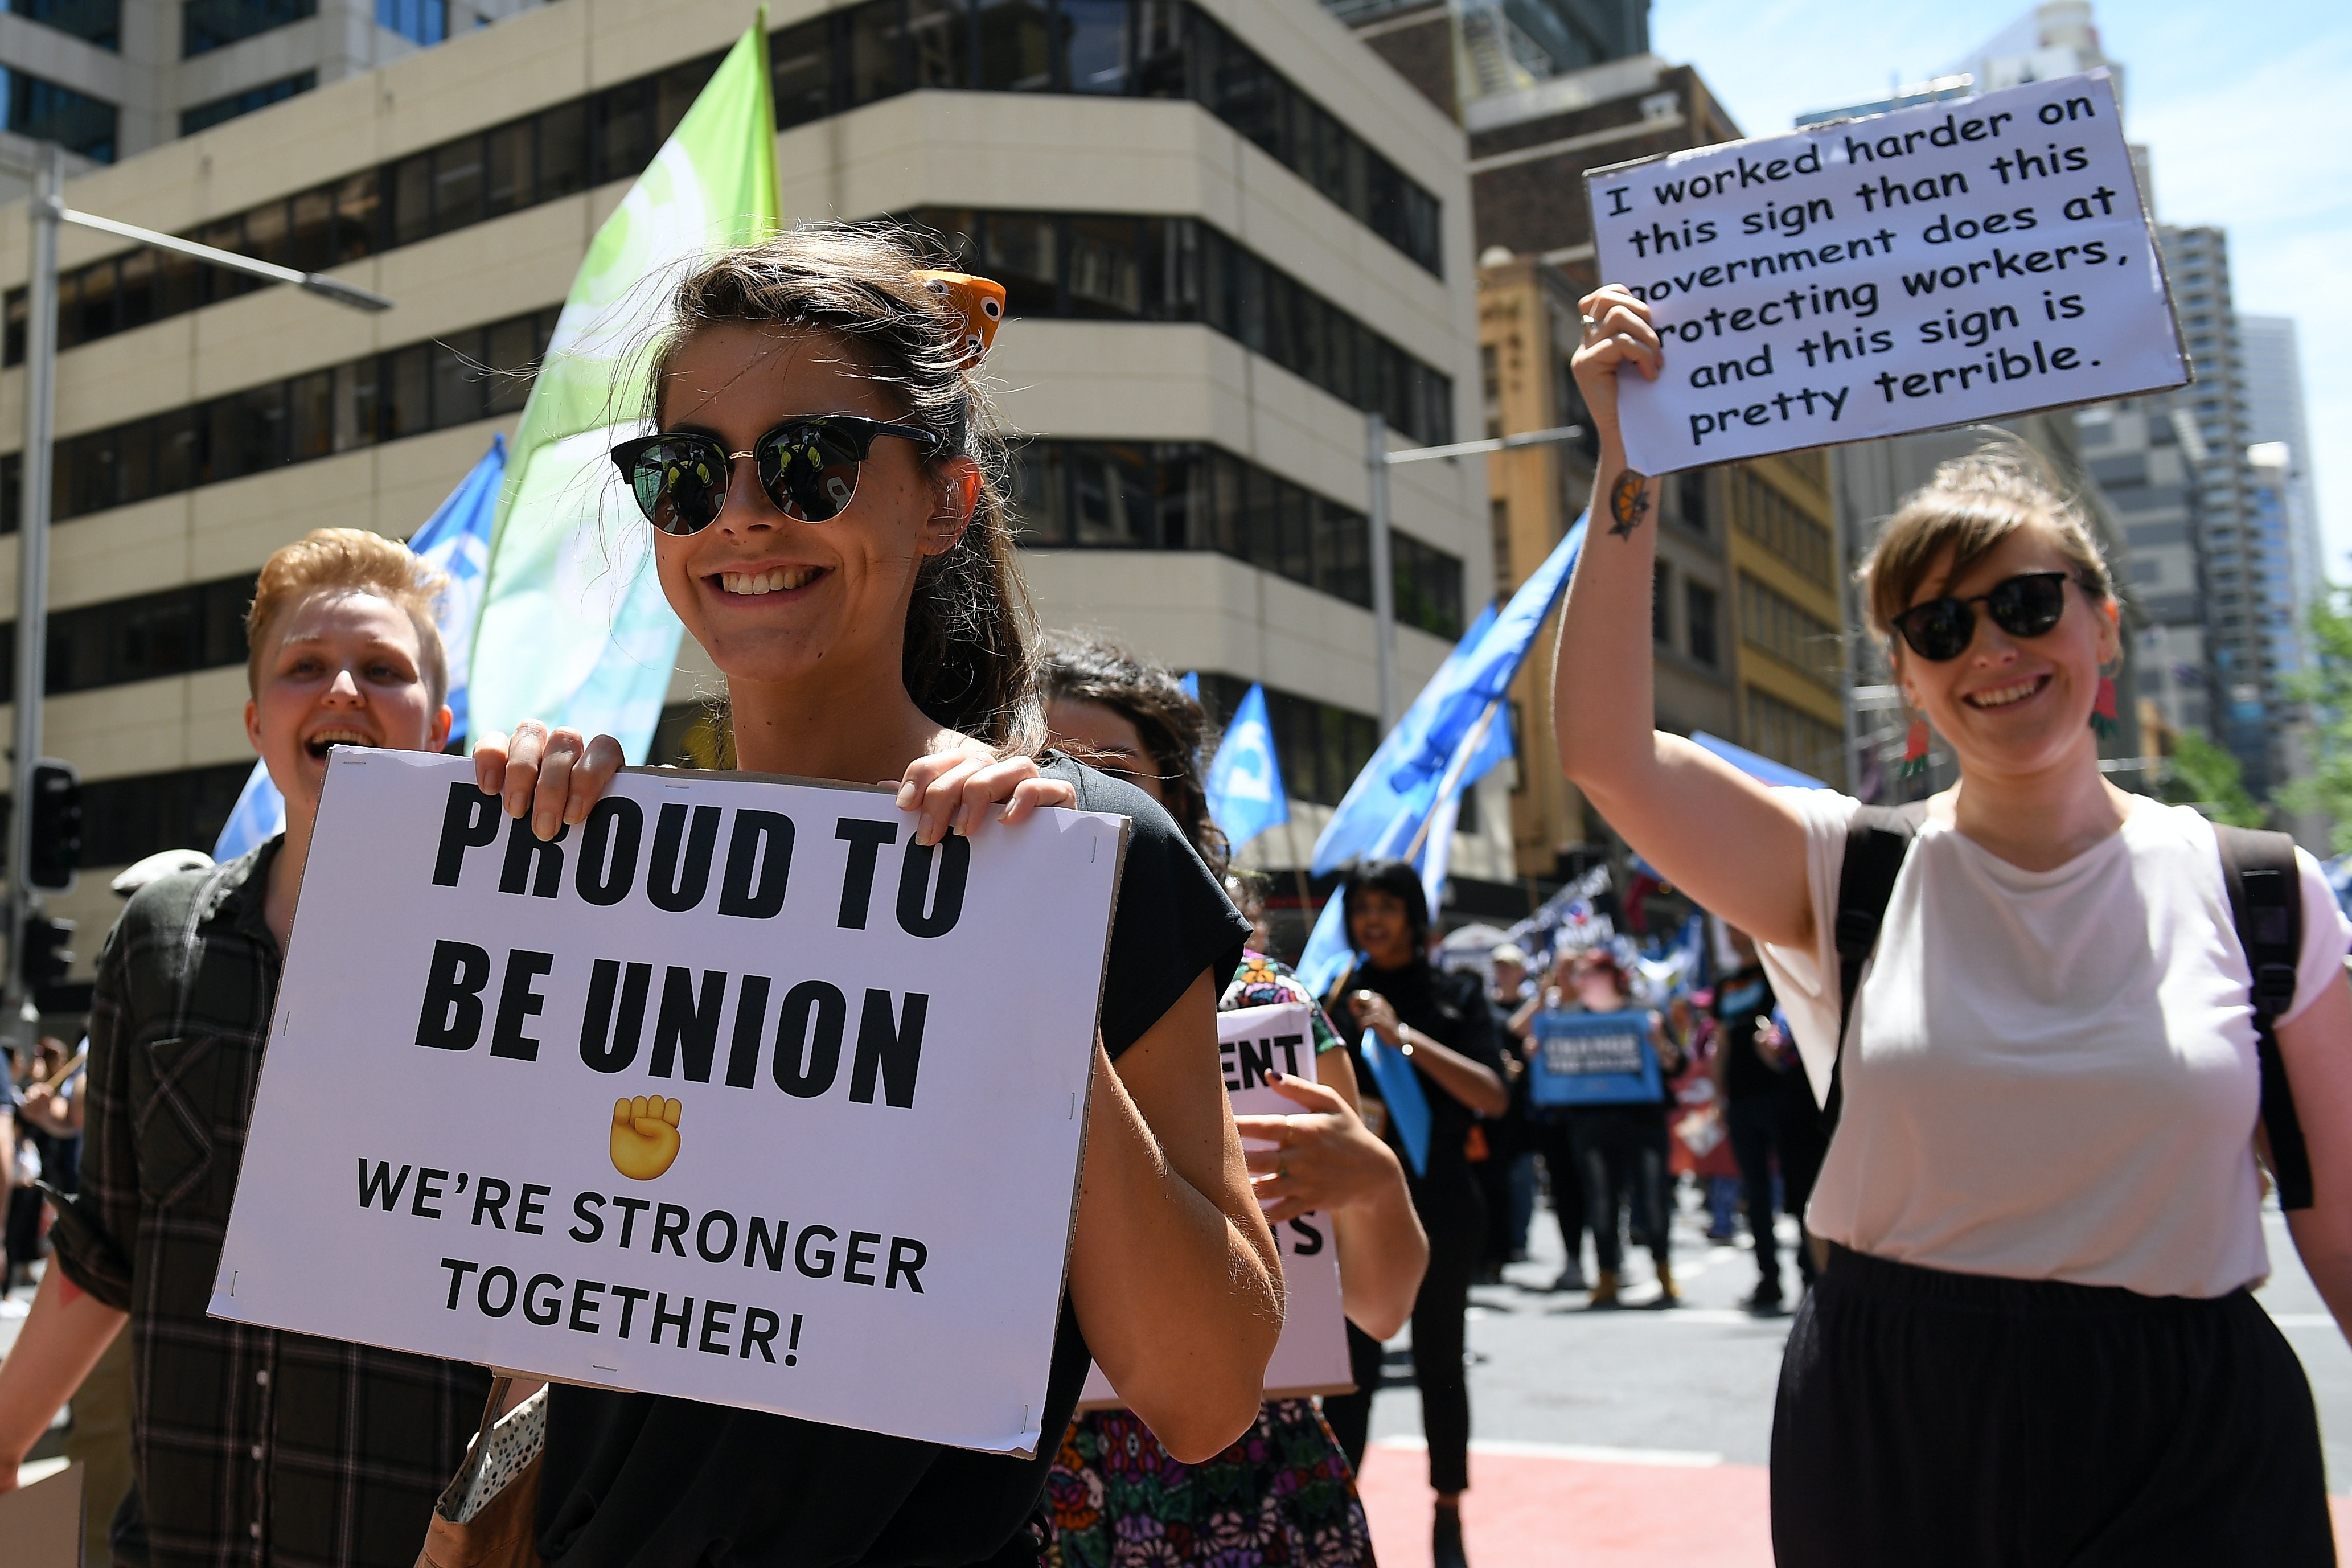 Unions do hurt profits, but not productivity, and they remain a bulwark against a widening wealth gap